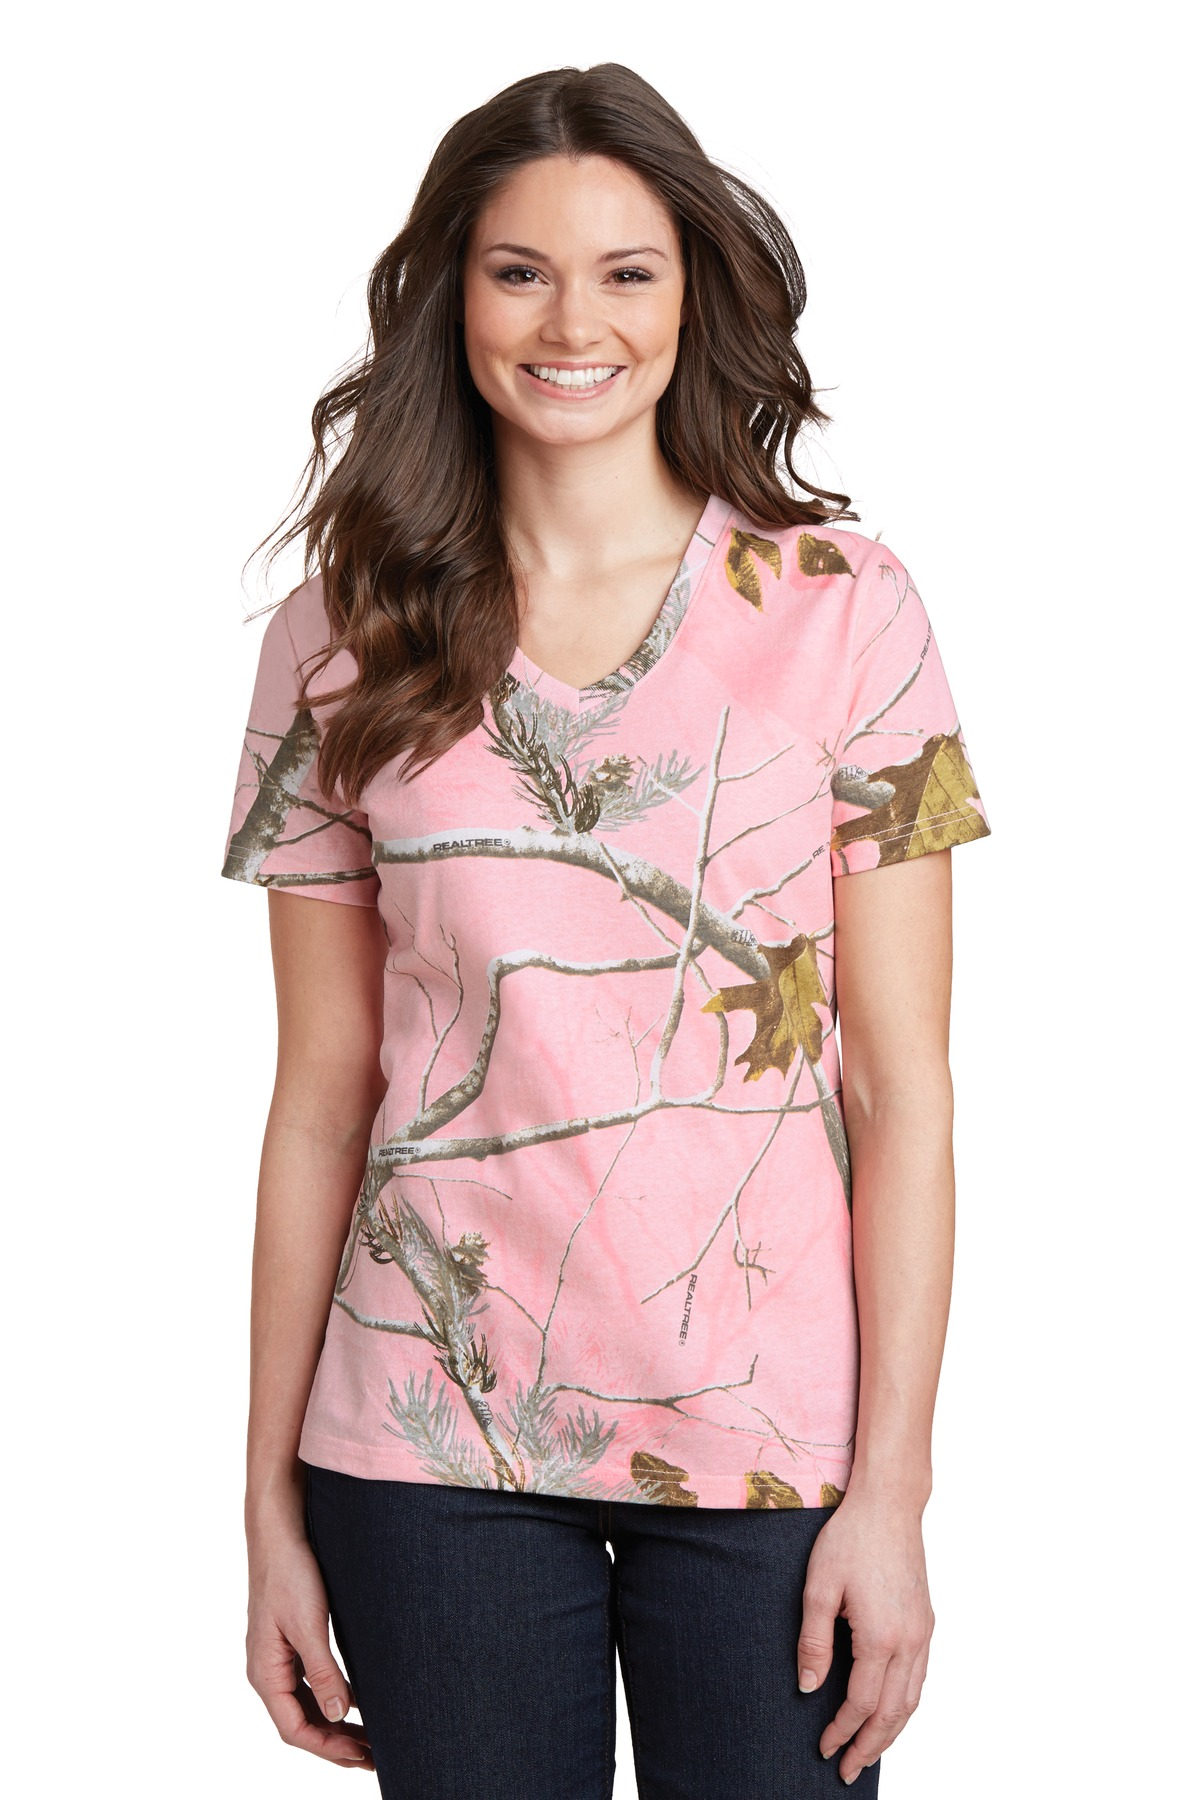 click to view Realtree AP Pink